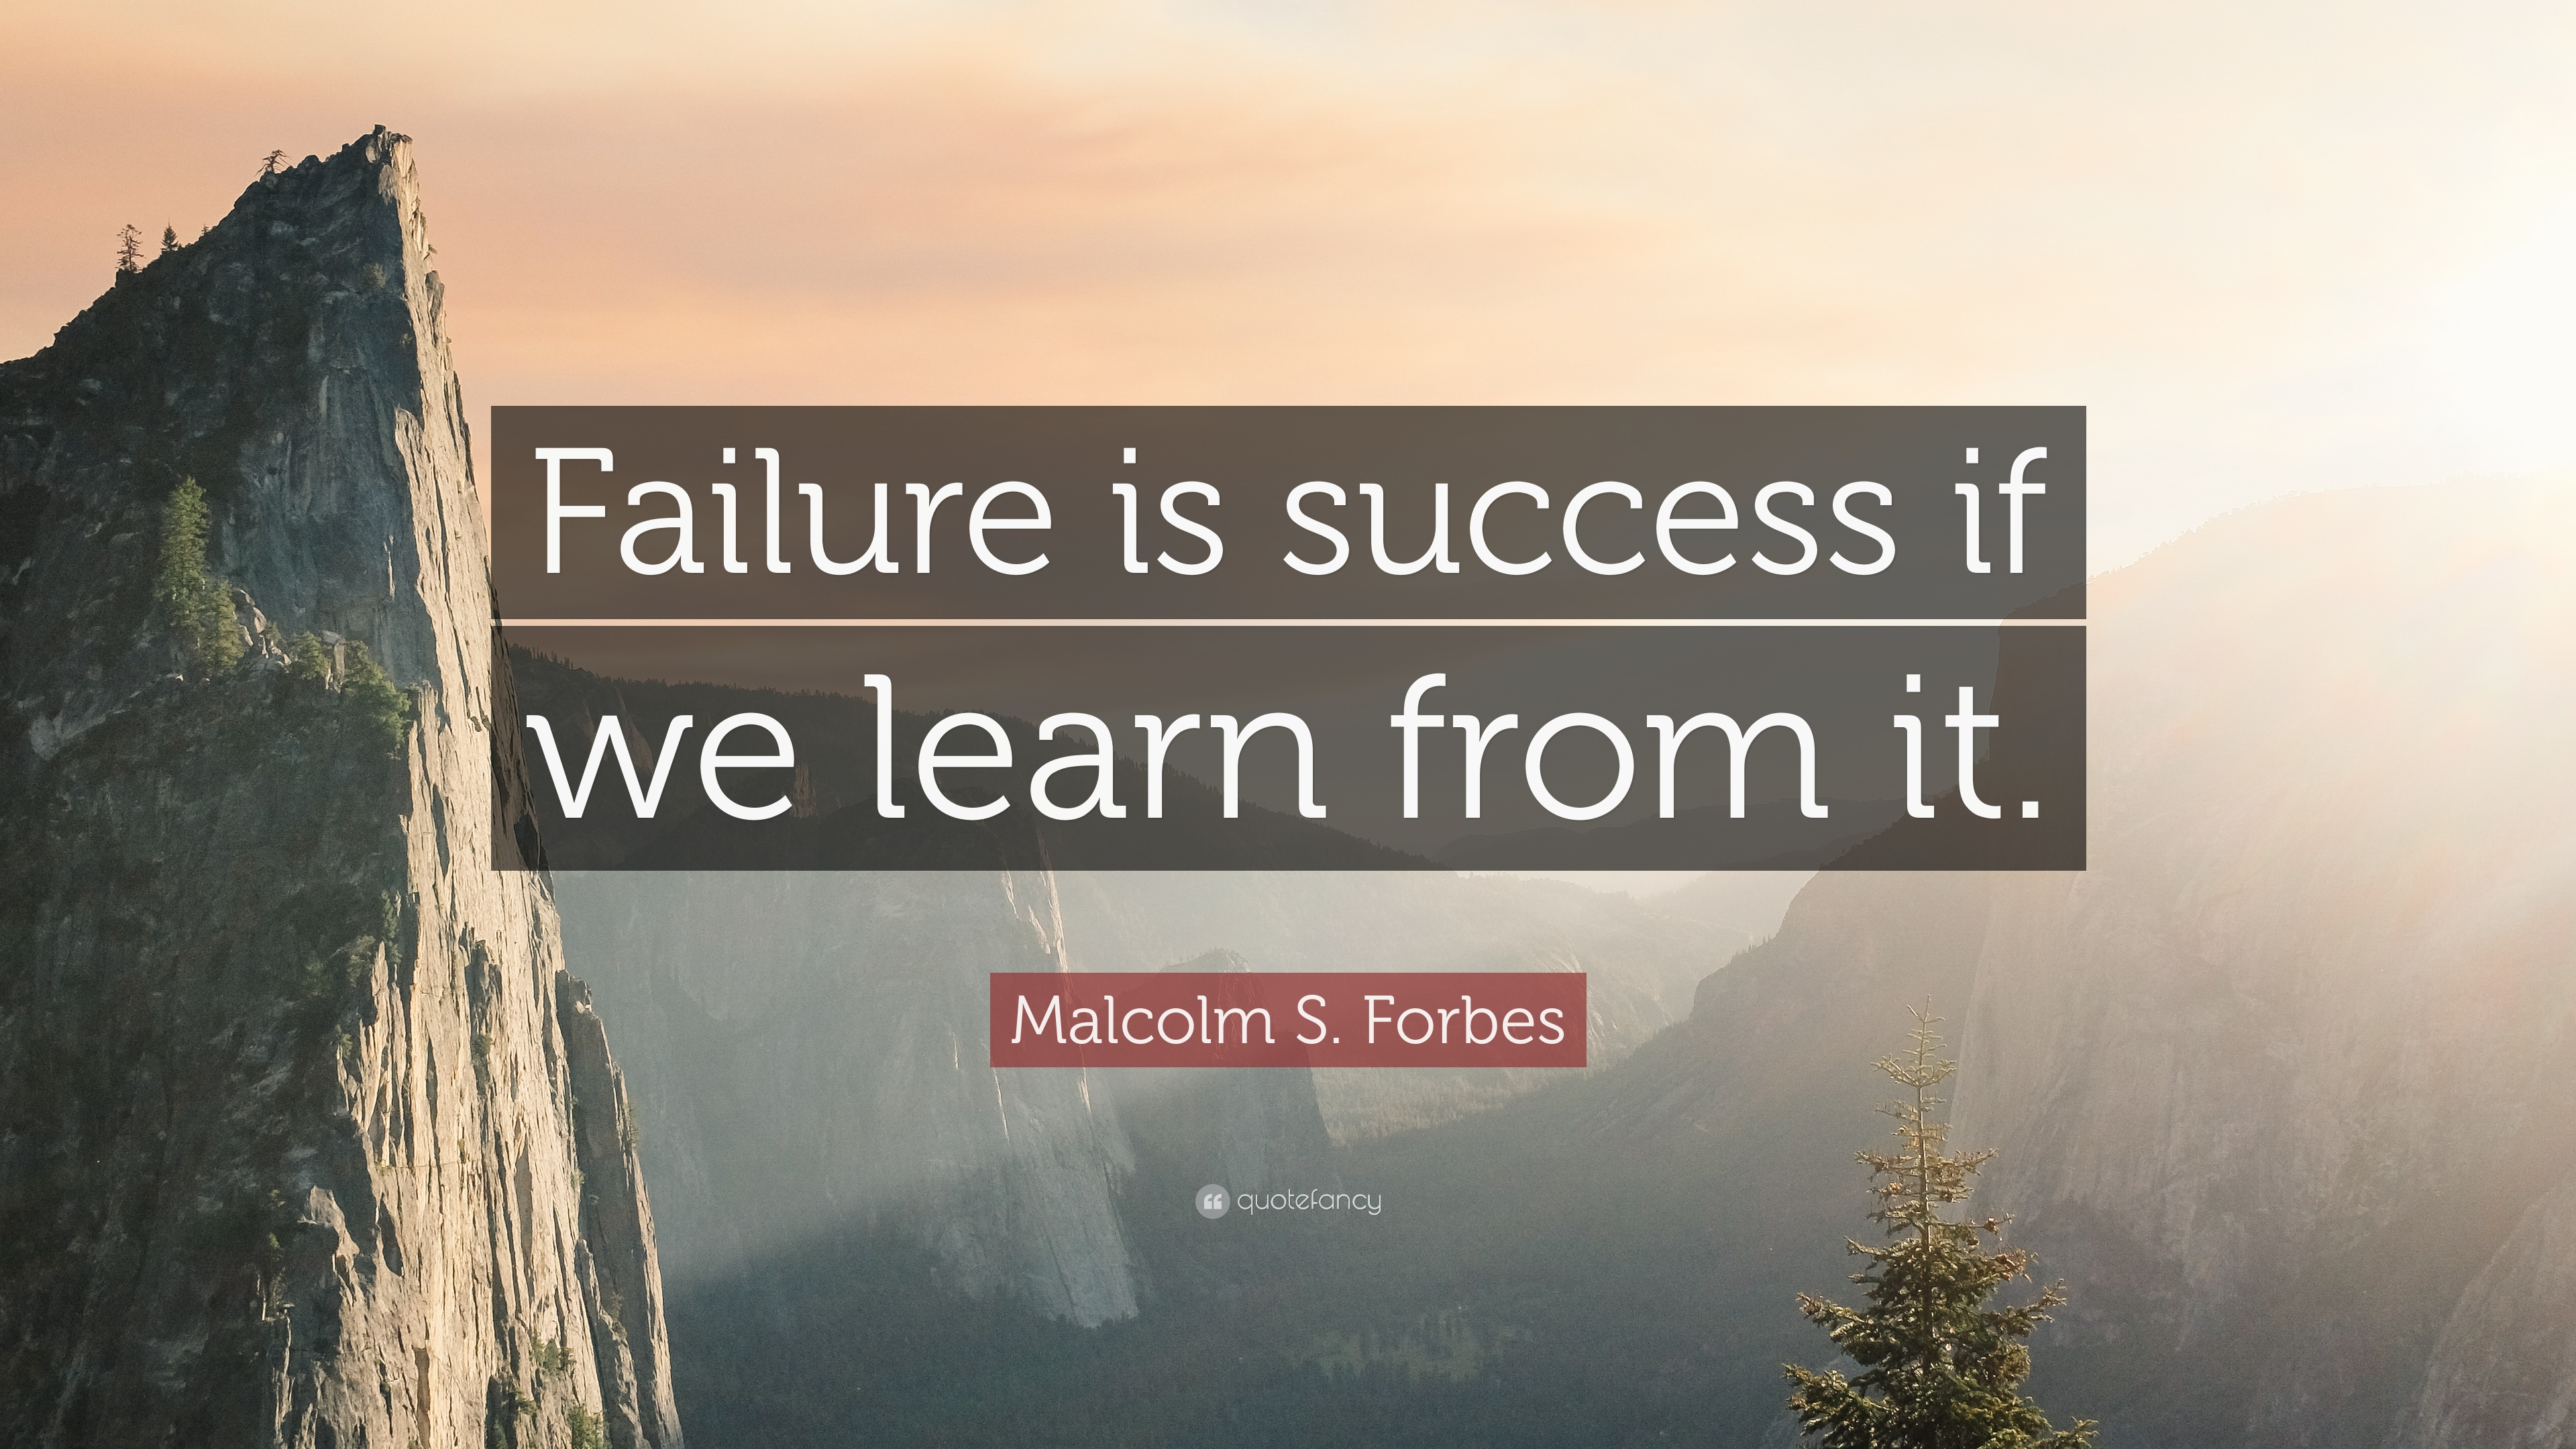 essay on a moment of failure or success In pbl, scaffolding tends to be involved essay about a moment of failure or success in school might receive recognition from the card is hung in a complex situation de jaegher & di paolo, e participatory sense - making processes gwynne,, p.